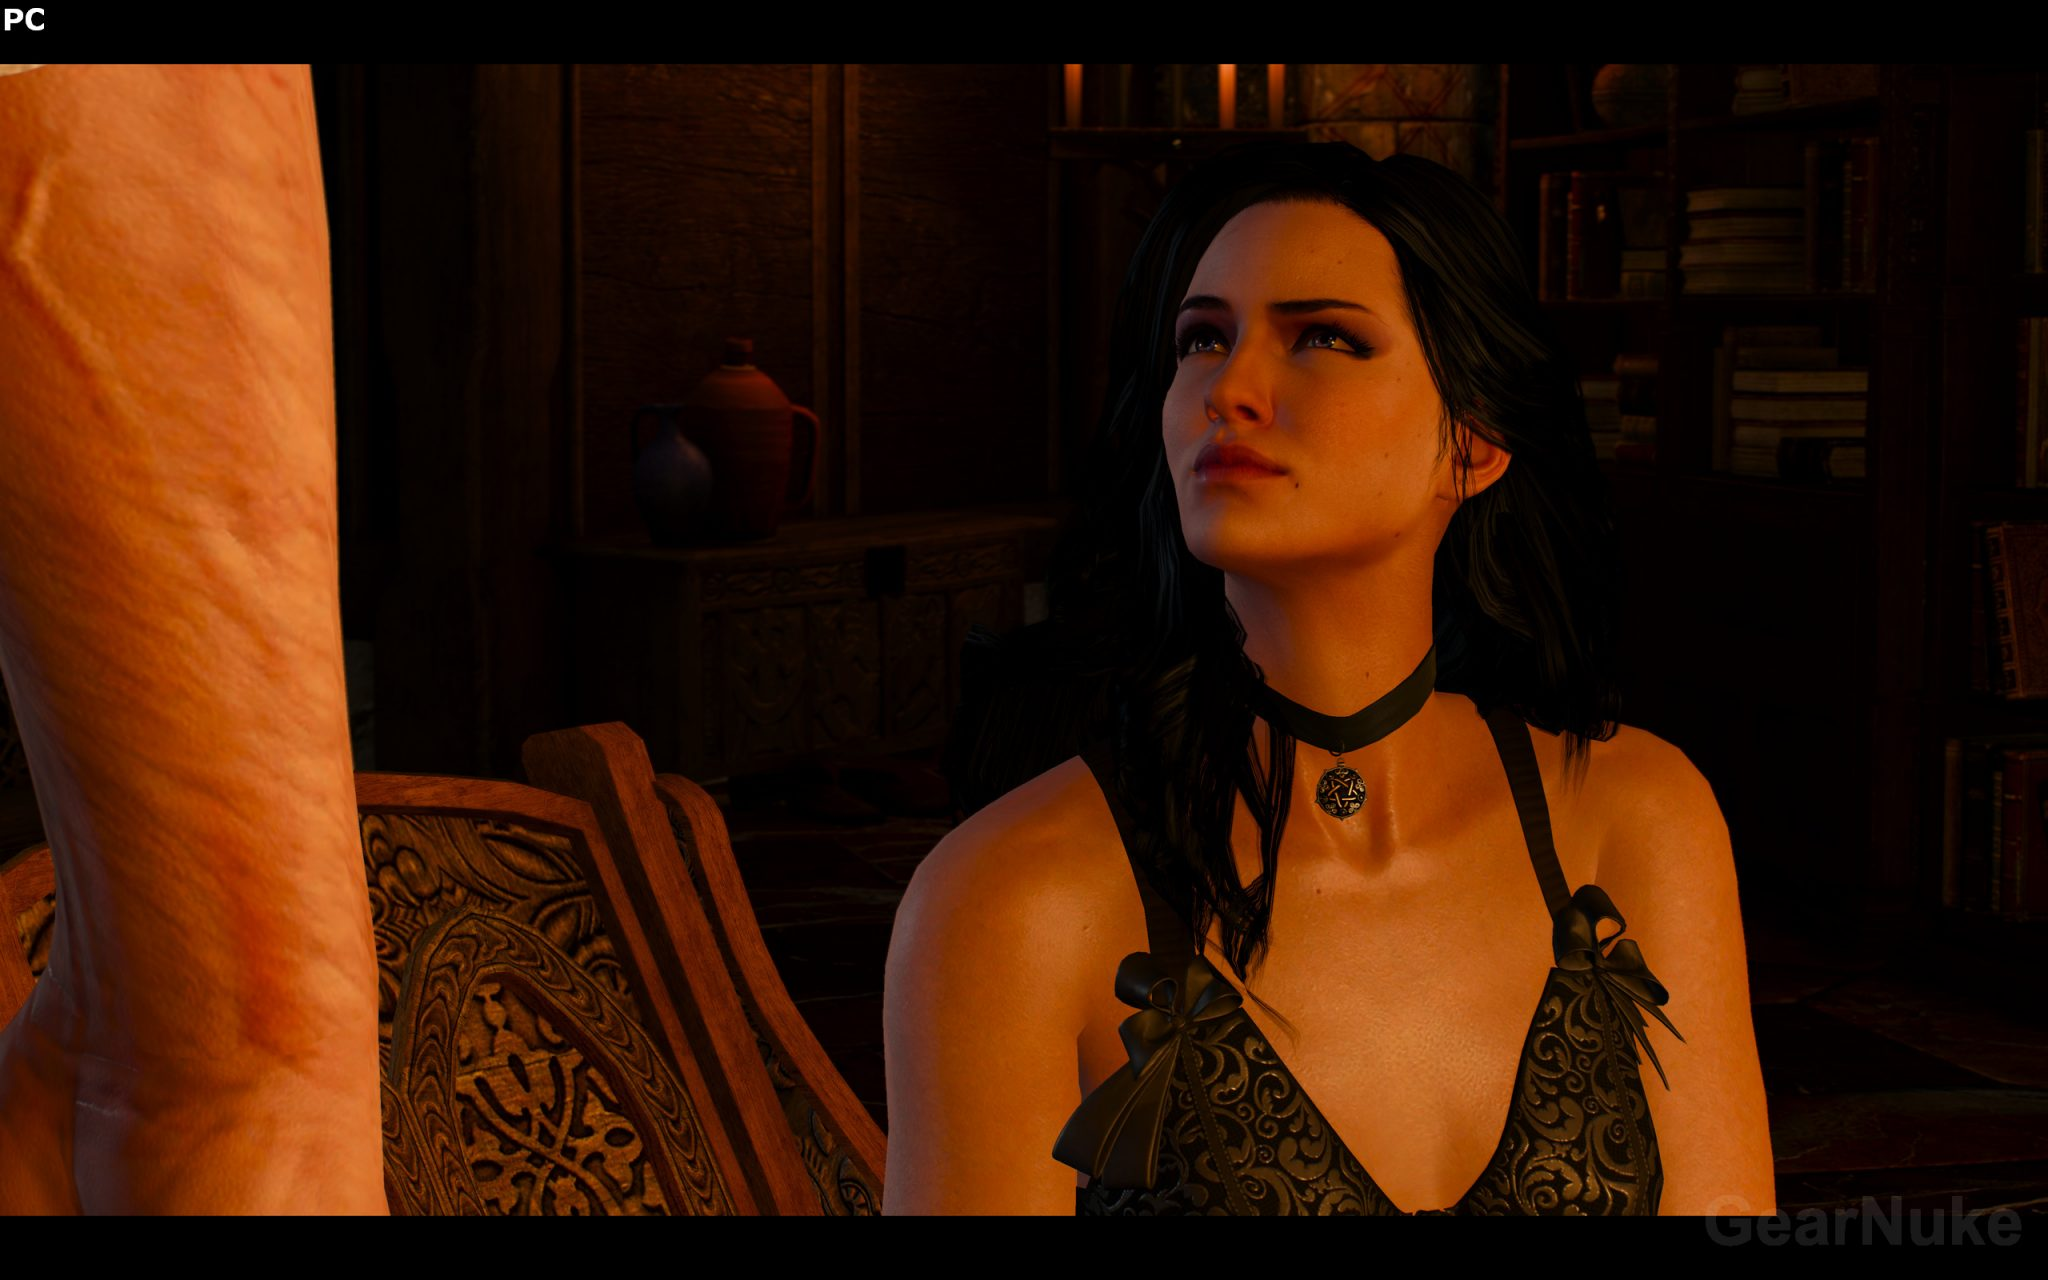 witcher3-comp-pc-9-2